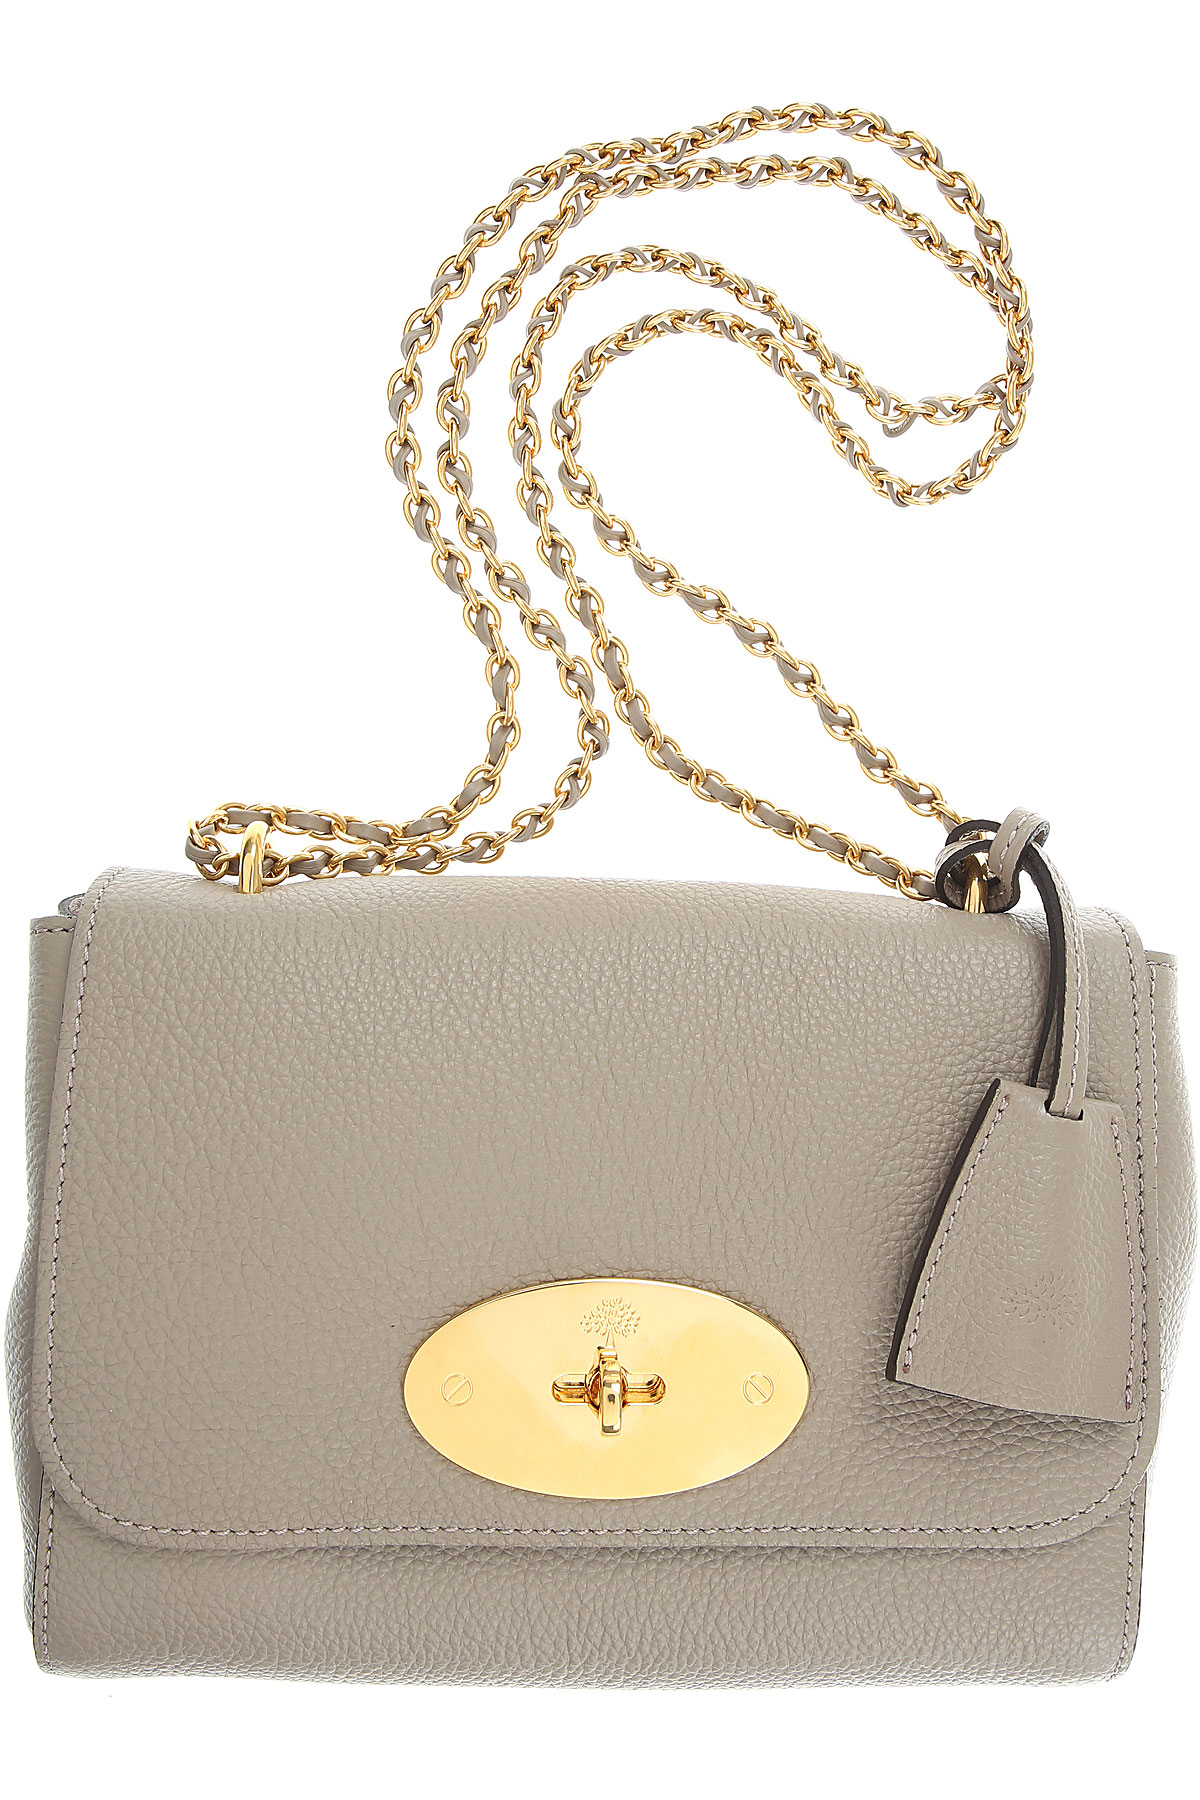 Mulberry Shoulder Bag for Women On Sale, Solid Grey, Leather, 2019